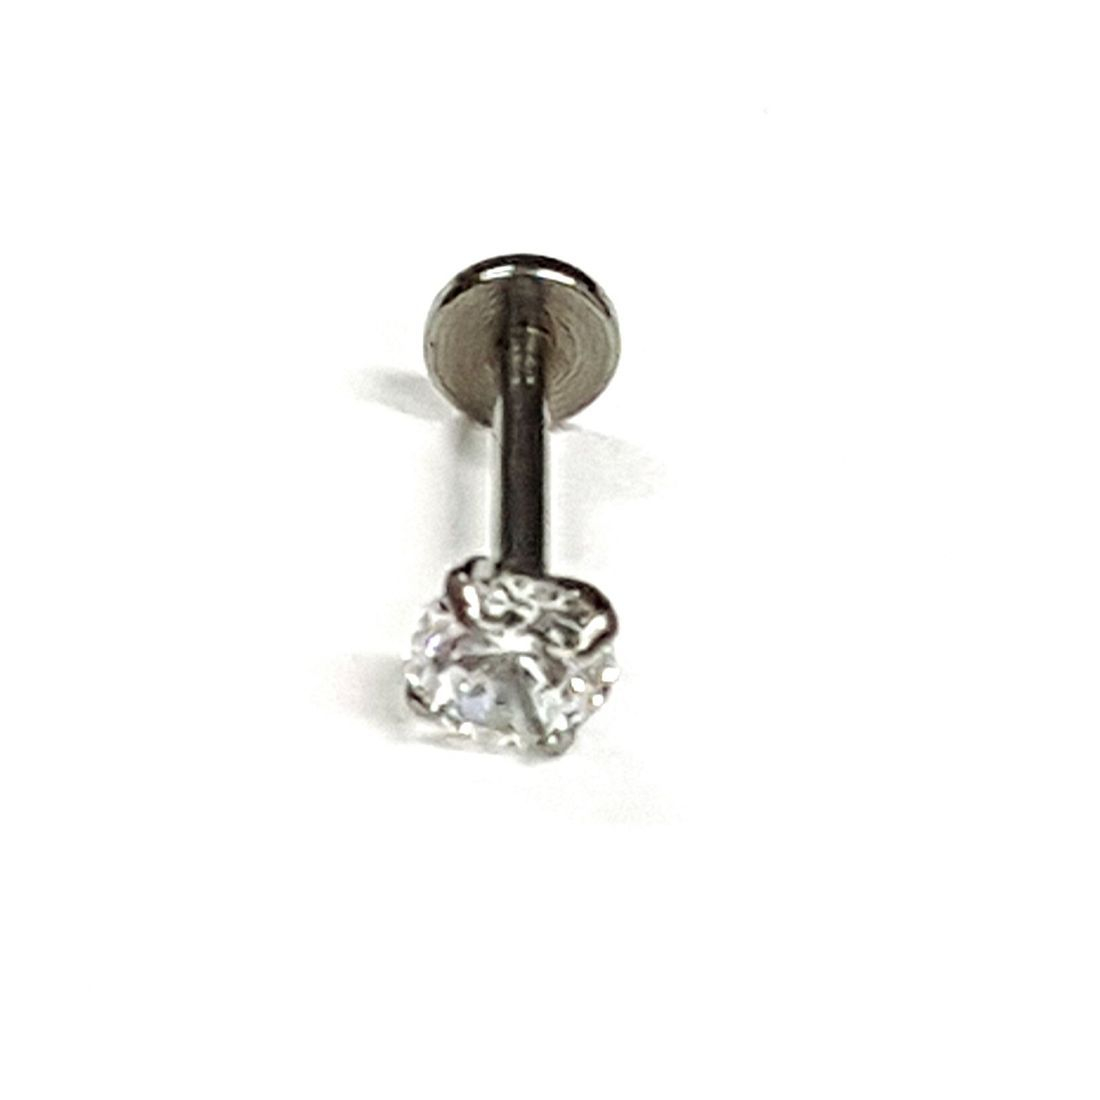 1.2mm x 8mm Internal Thread 5mm Clear Crystal Flat Back Bar   available at Kazbah online and our Leicester City Centre Shop